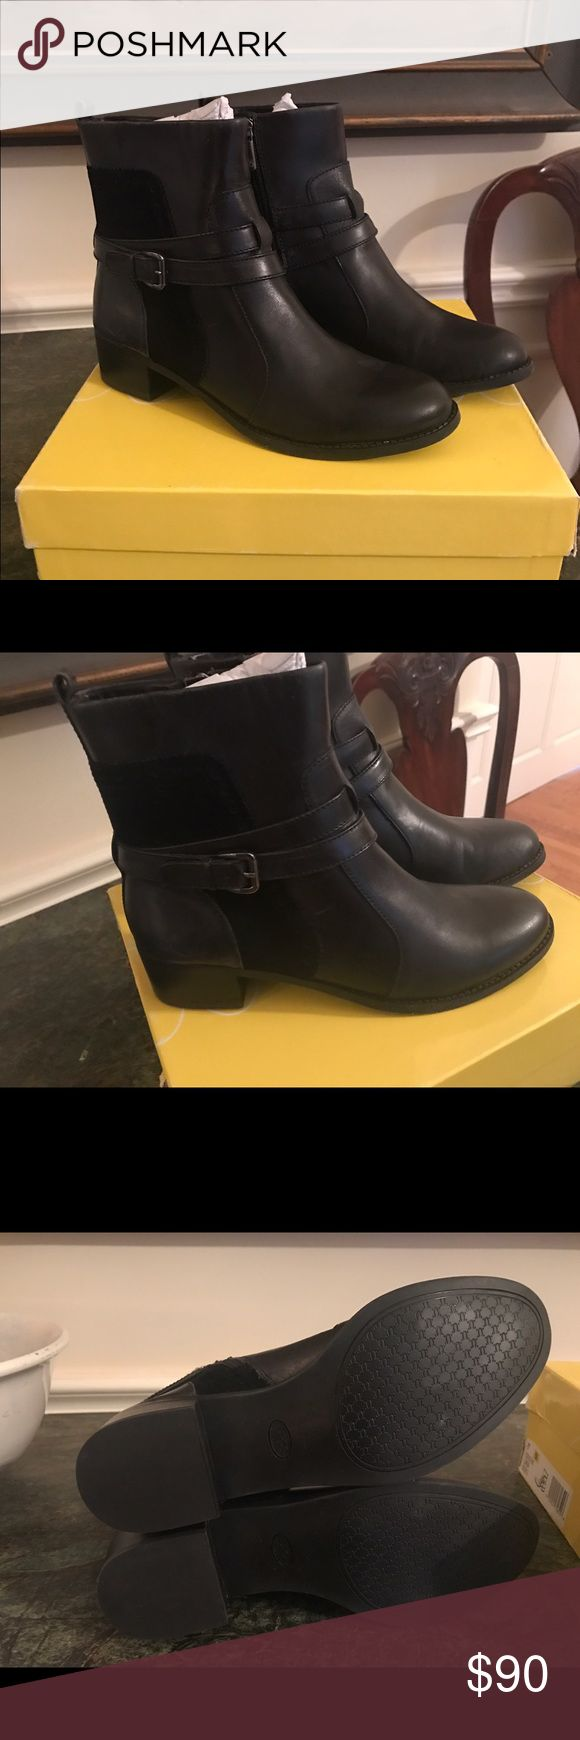 New Circa Joan and David Bruna Boots Sz 7 Leather and suede upper. Inside-zip closure. Rounded toe. Harness strap detail. Synthetic lining. Lightly padded footbed. Stacked heel. Synthetic outsole Joan & David Shoes Ankle Boots & Booties